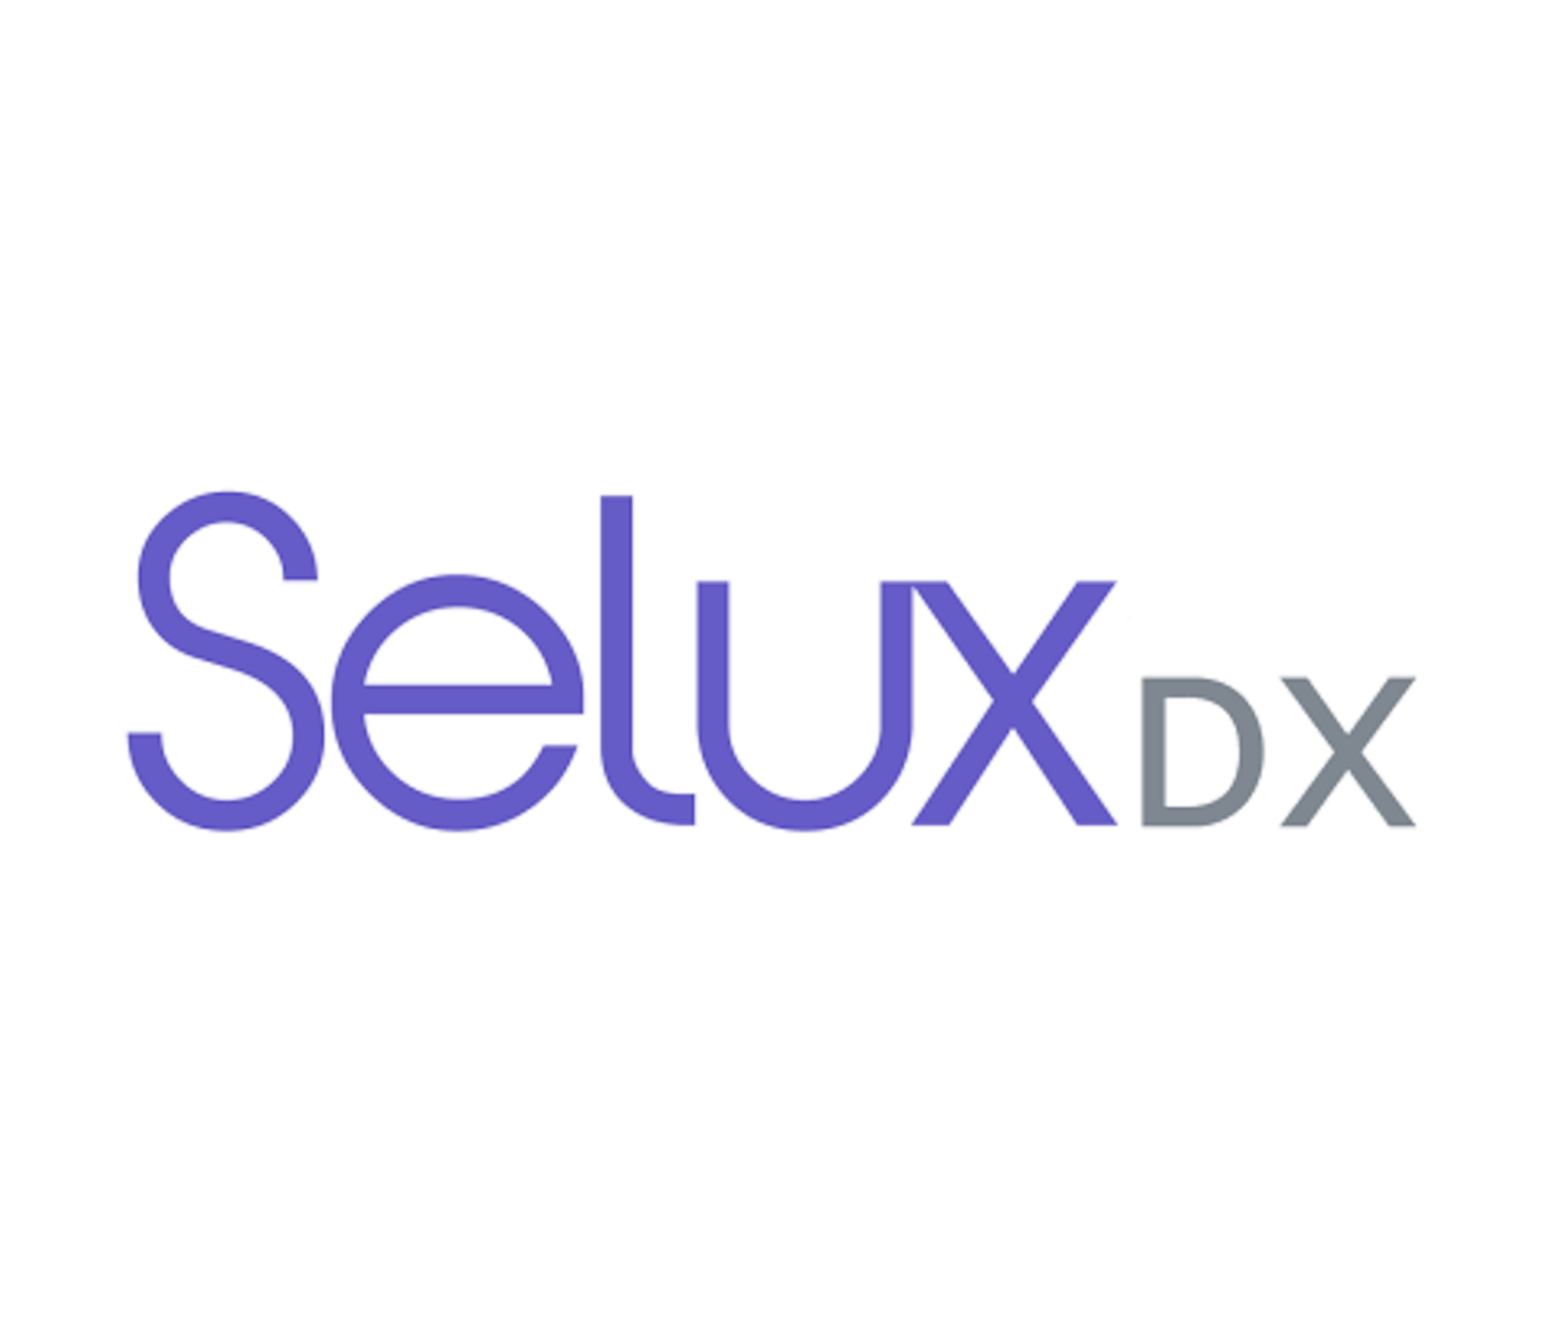 Selux Diagnostics is pioneering a breakthrough technology platform enabling fast, personalized treatment for bacterial infections.